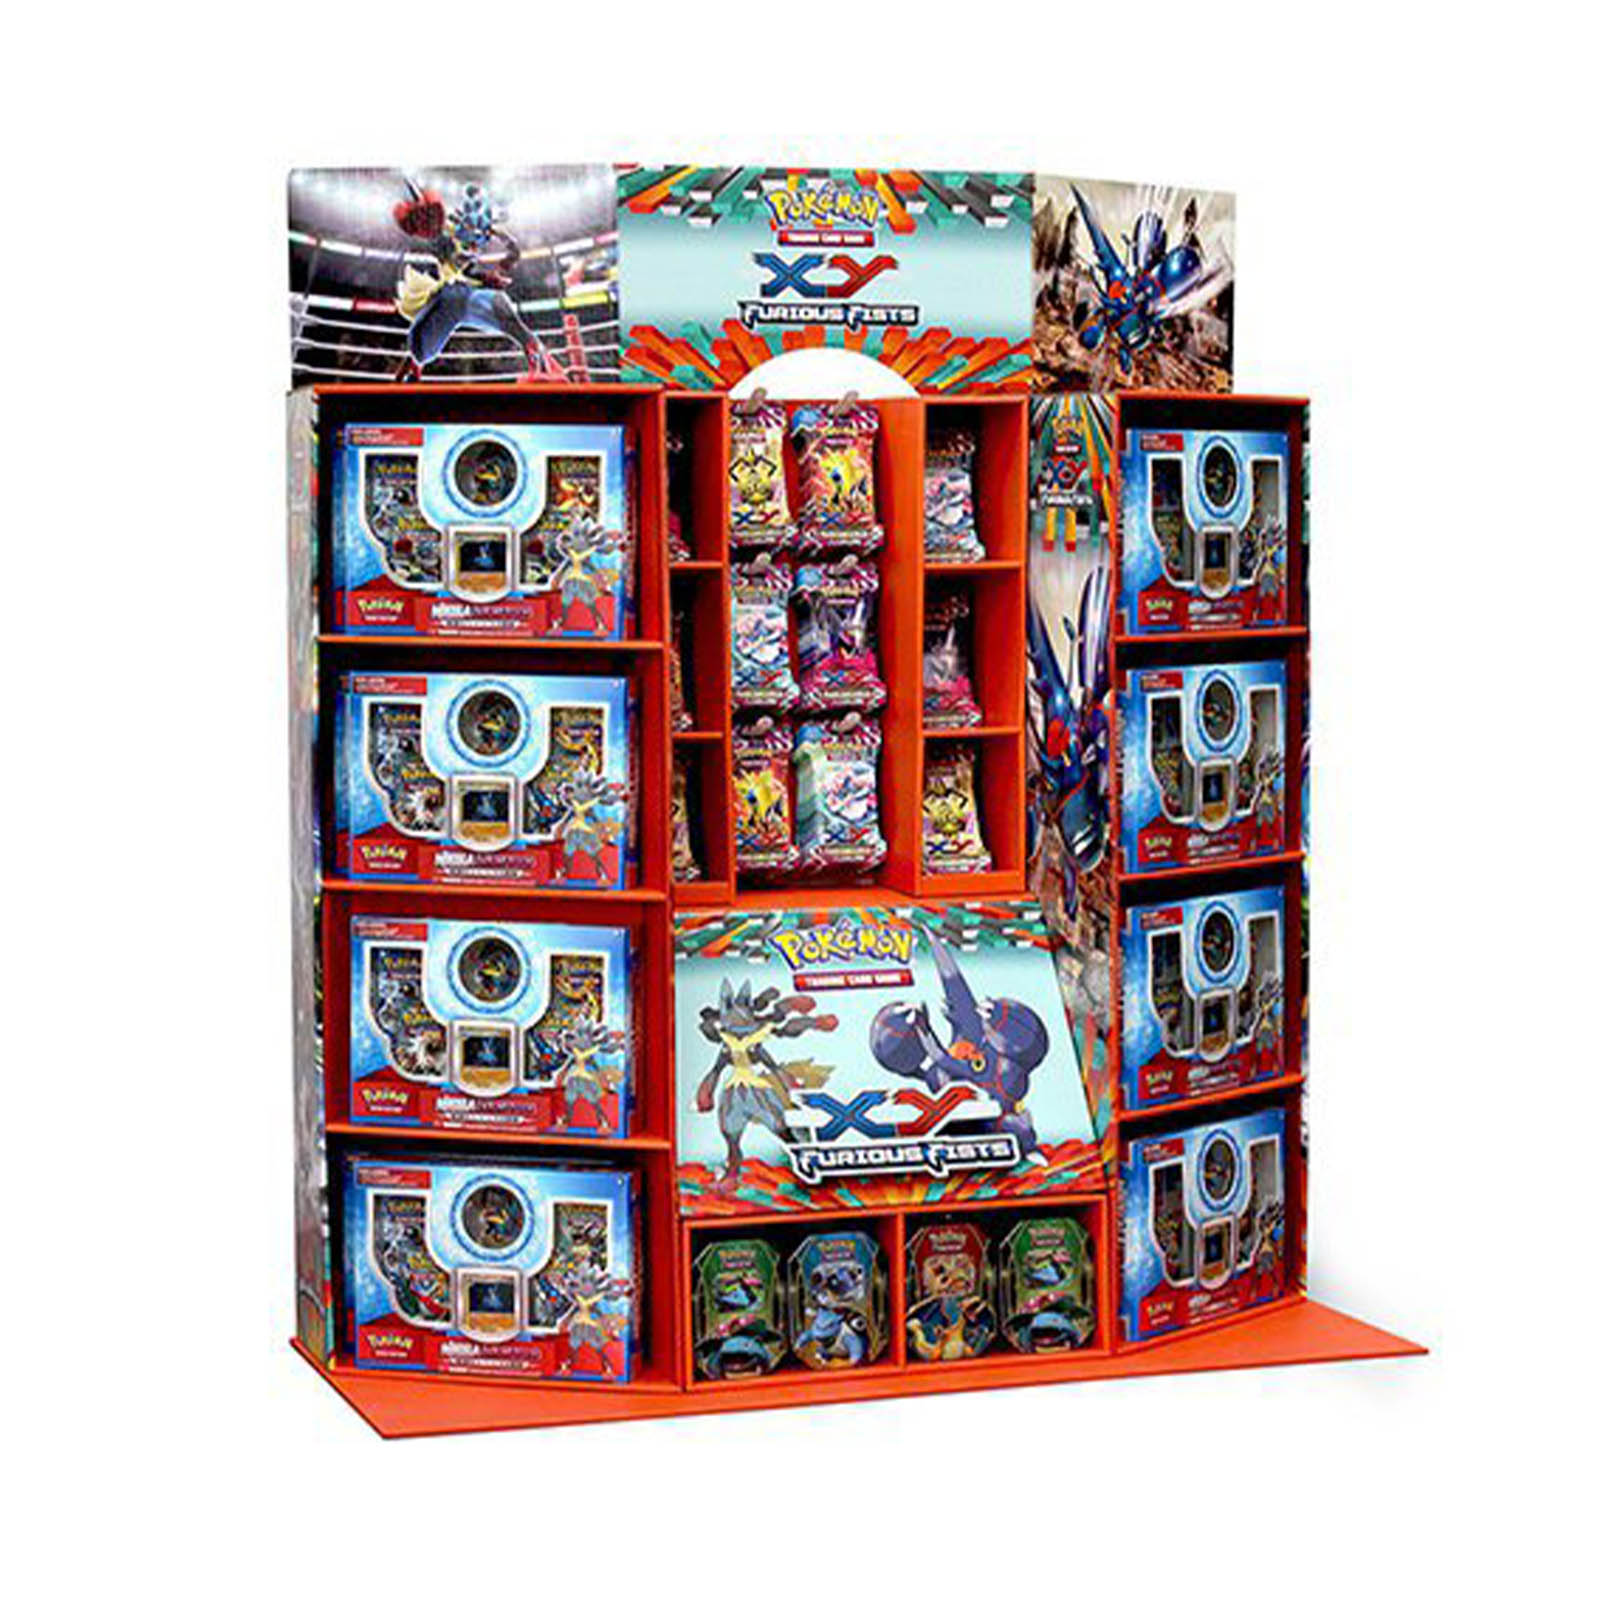 Half Pallet Display Retail POP Pokemon Trading Cards